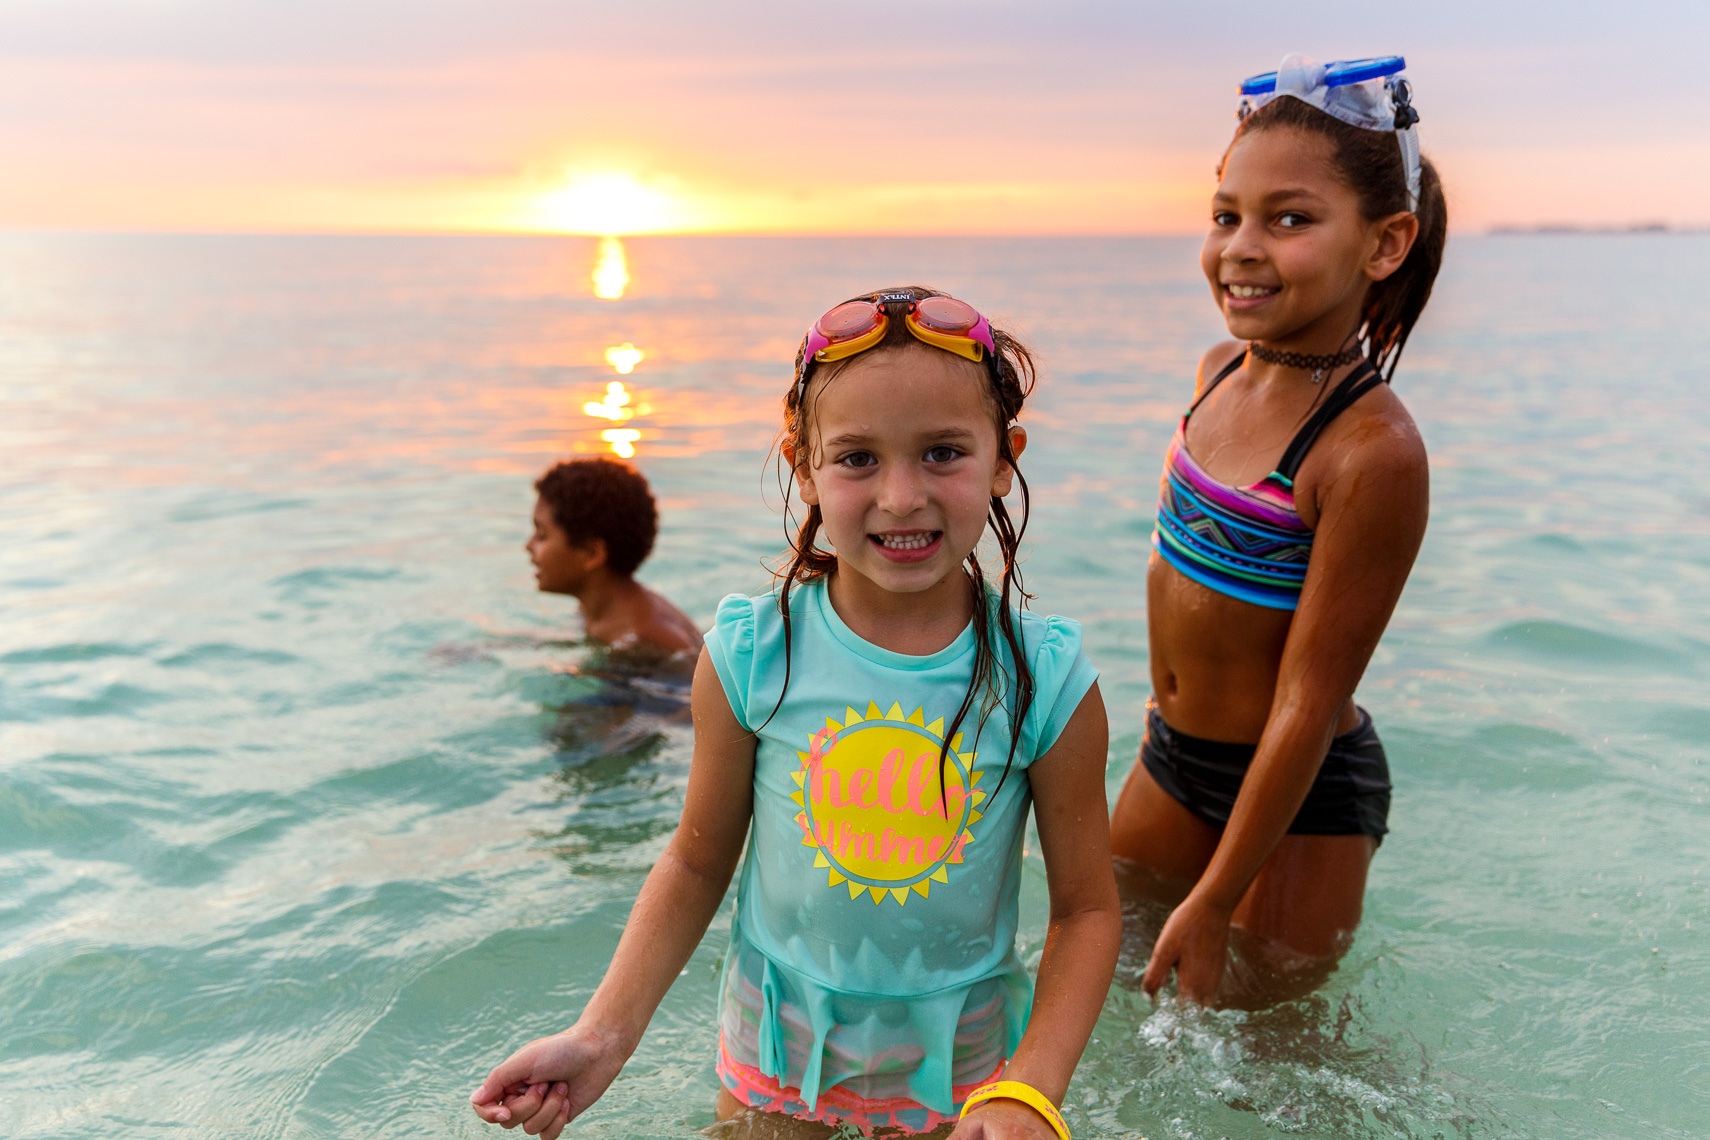 Children play in the Gulf of Mexico at sunset